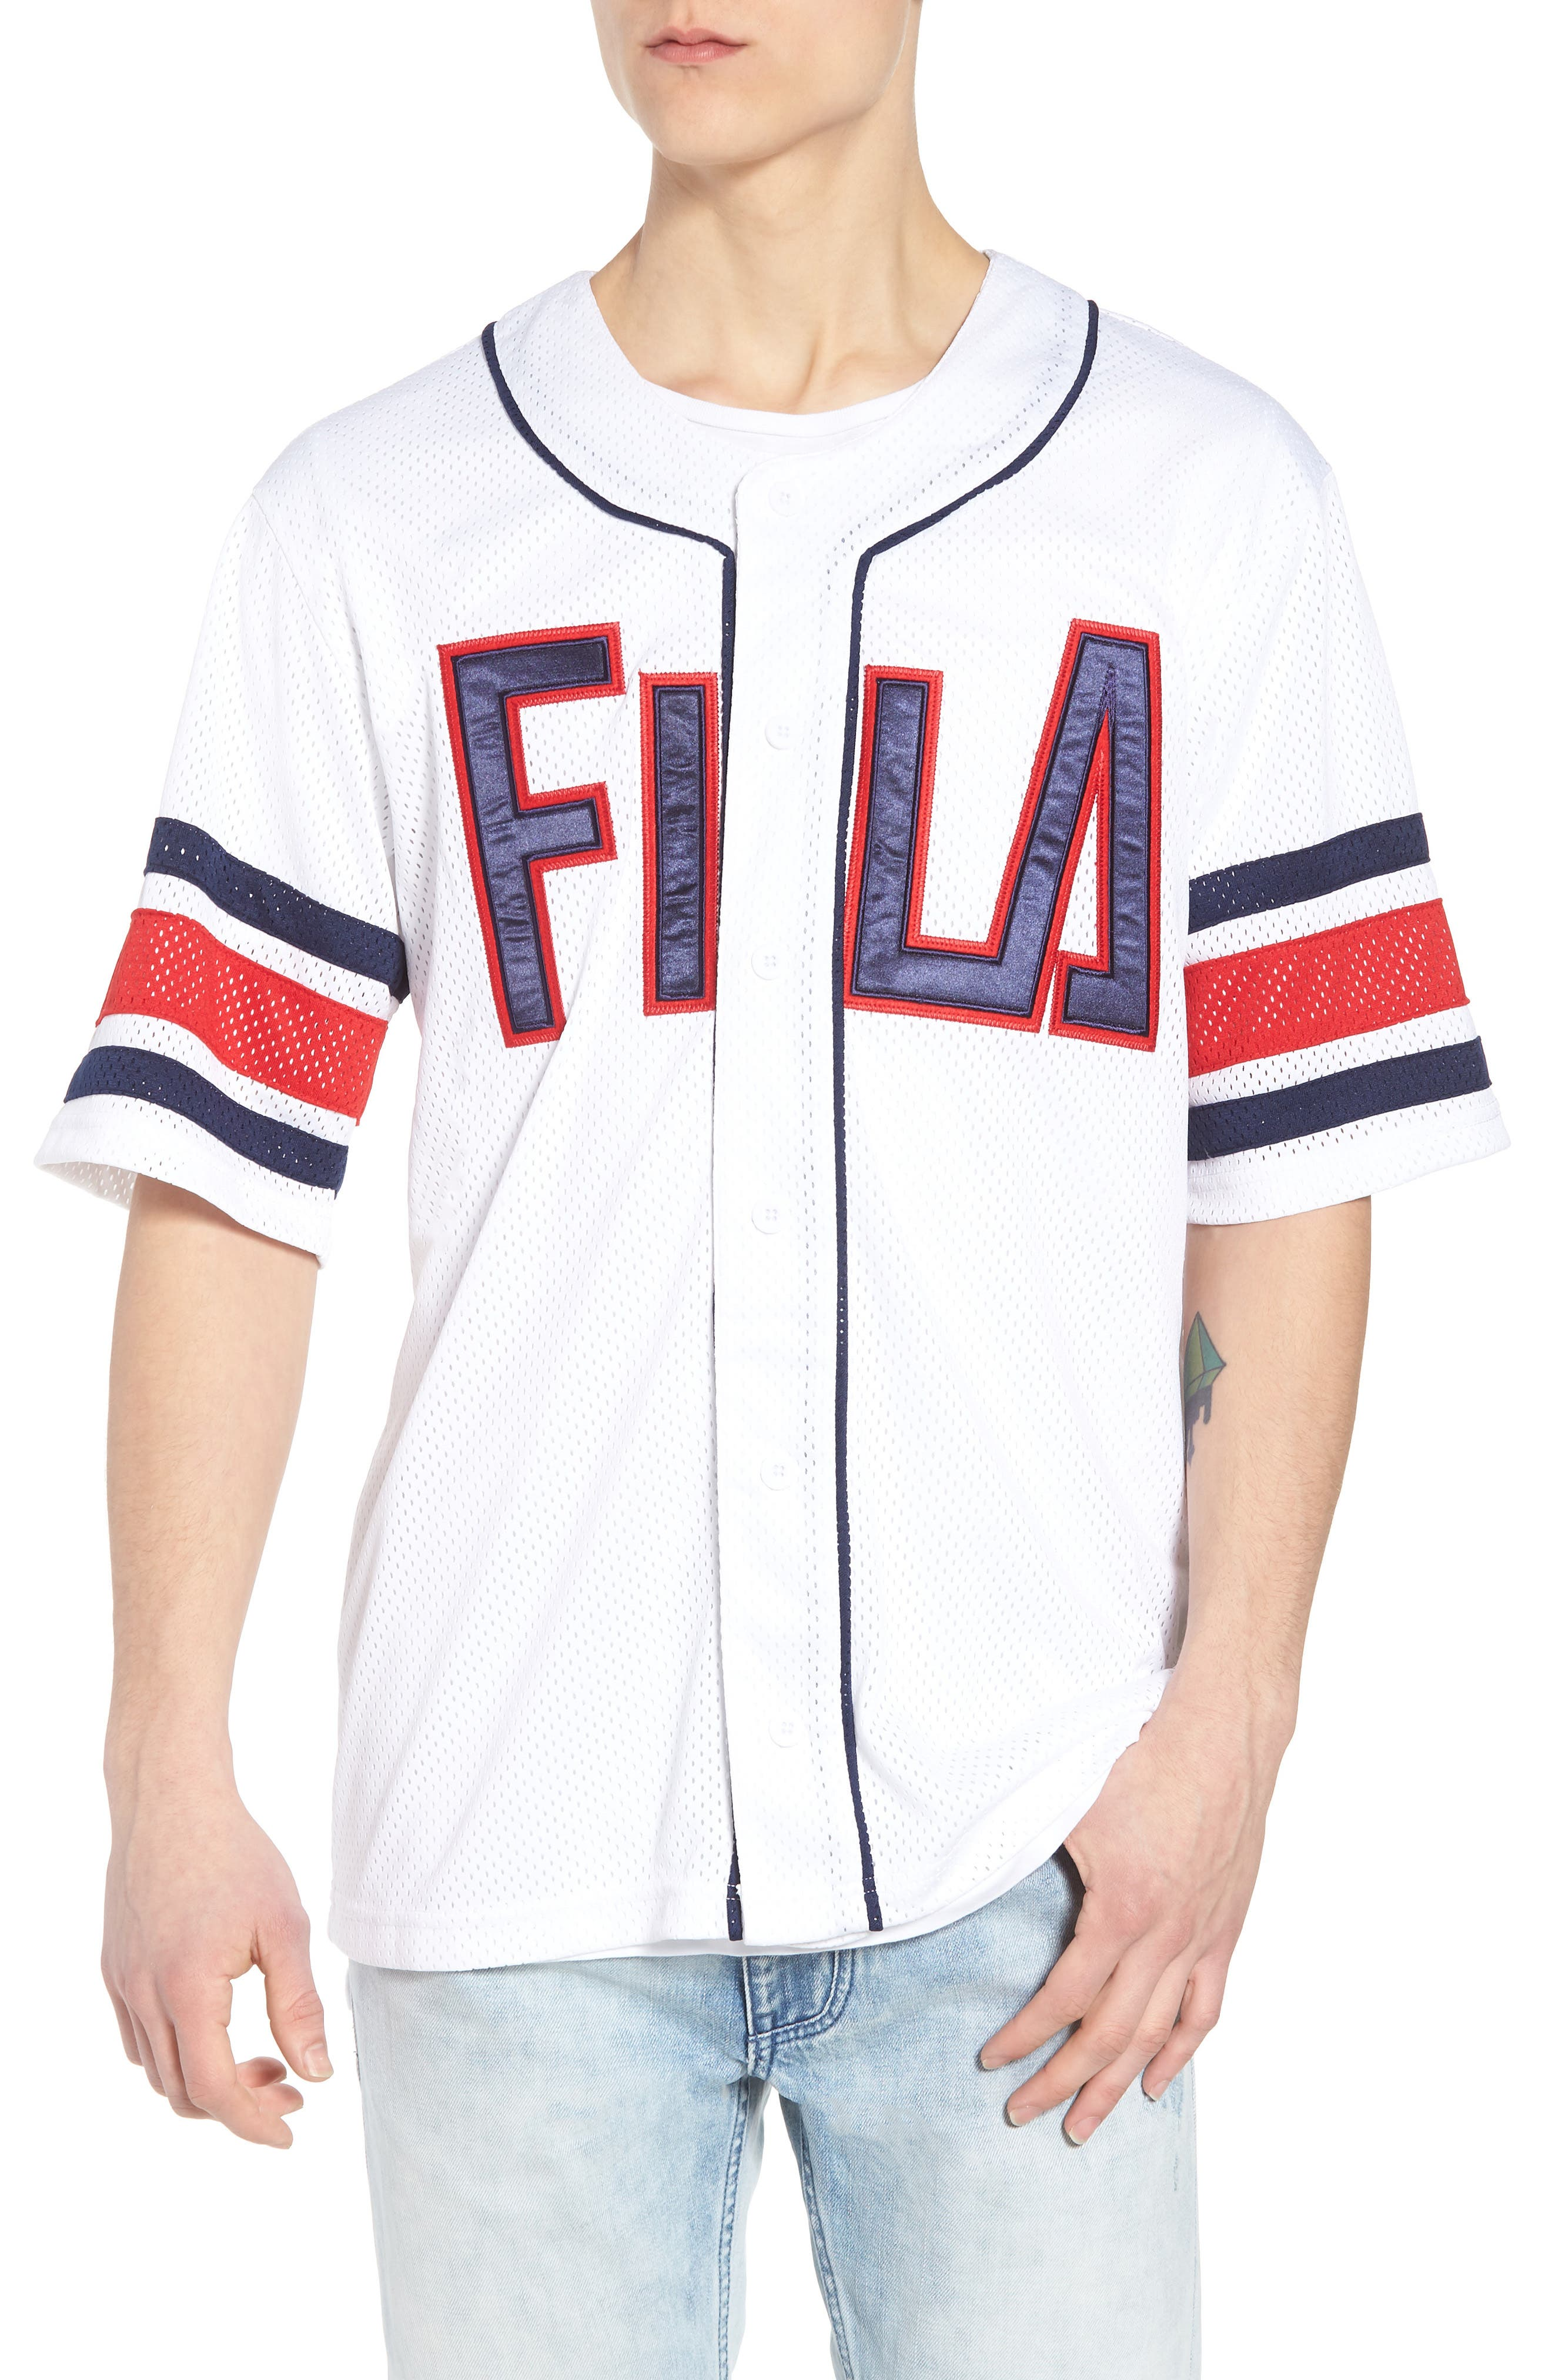 Kyler Baseball Jersey,                         Main,                         color, White/ Peacoat/ Chinese Red